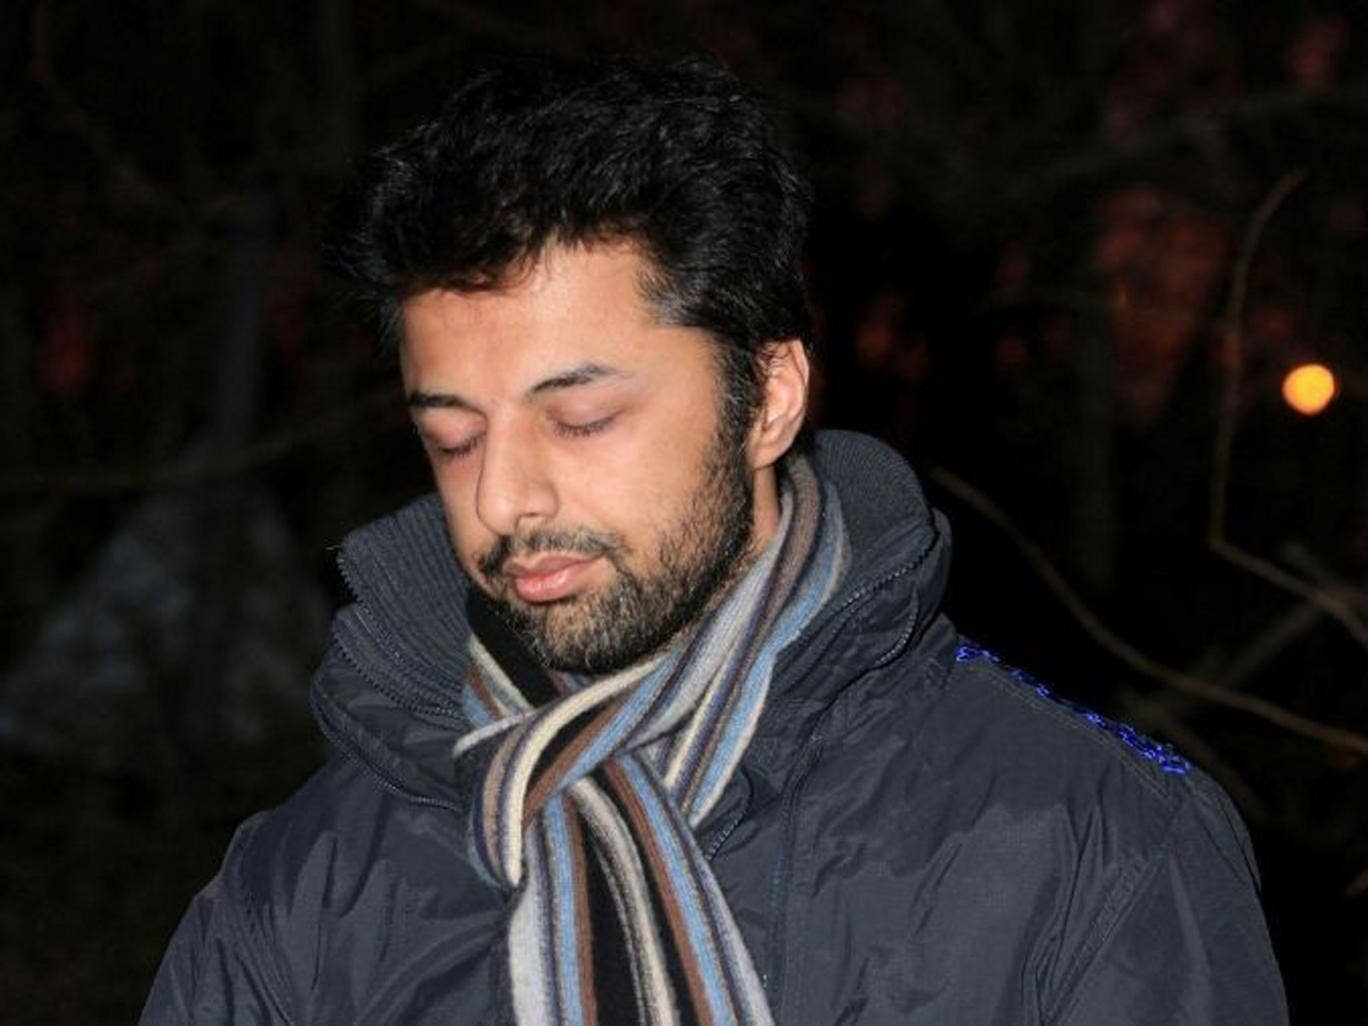 Dewani is expected to arrive in Cape Town on Tuesday morning, where he will be taken straight to a court hearing